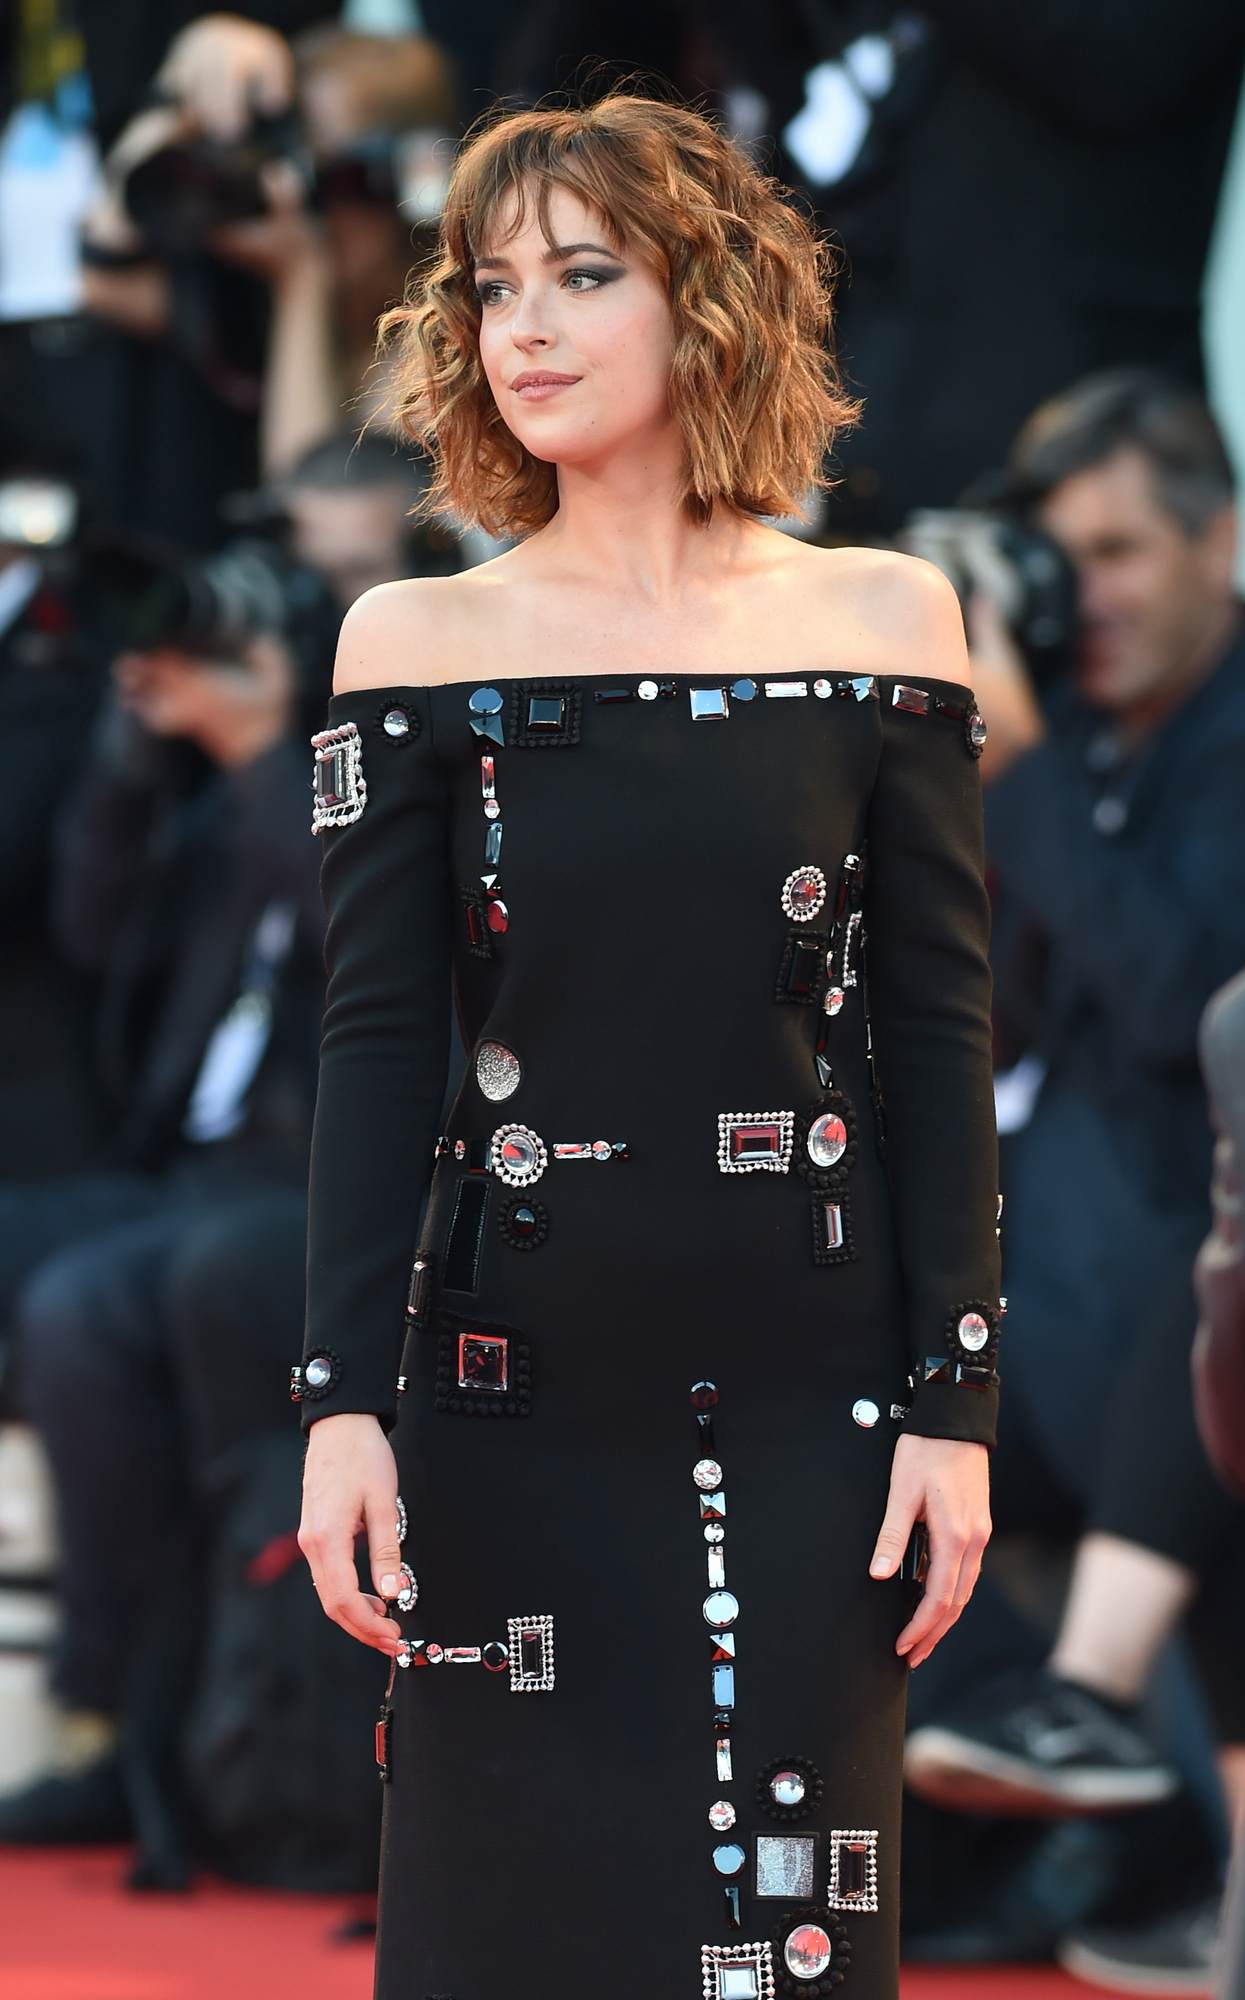 /dakota-johnson-in-marc-jacobs-a-bigger-splash-venice-film-festival-premiere